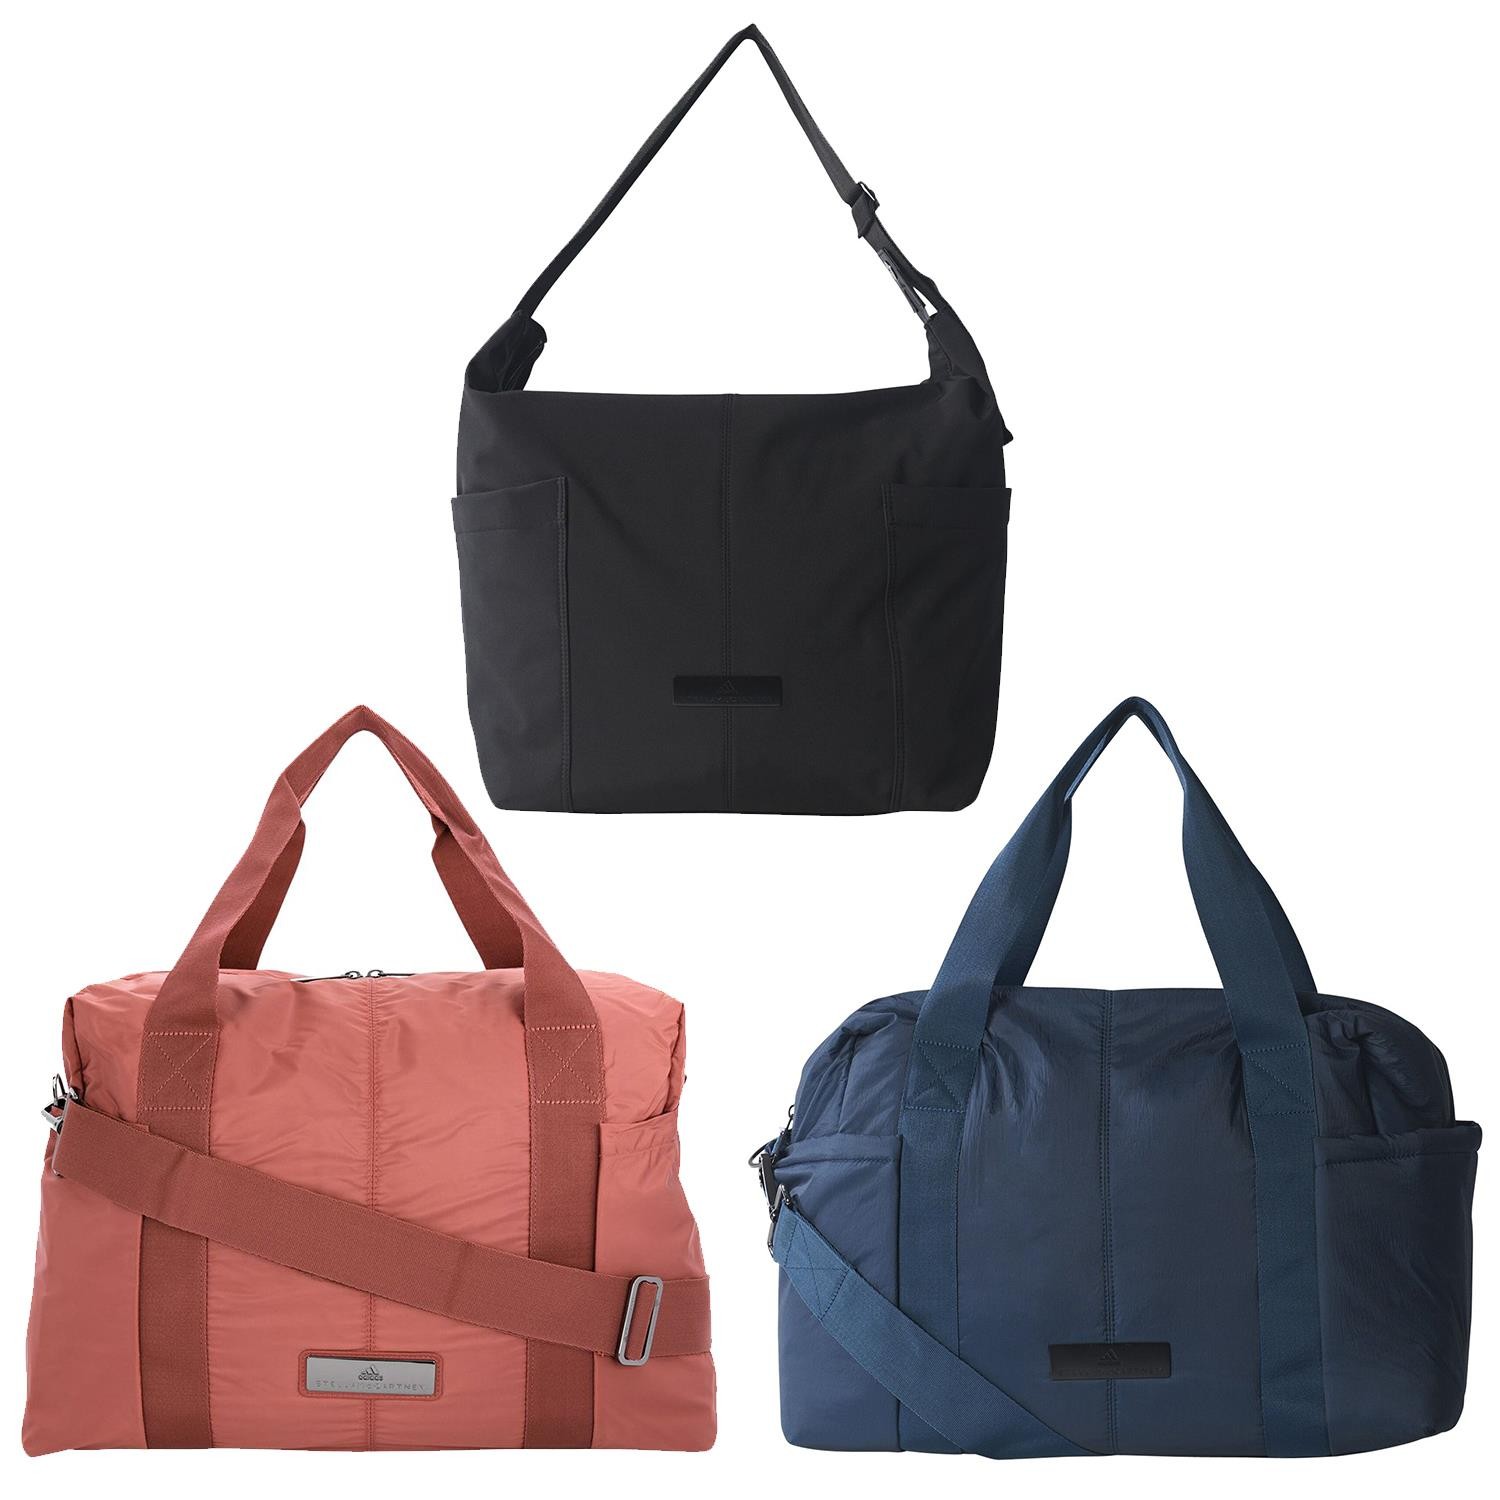 ADIDAS BY STELLA MCCARTNEY | Bags | TRAVEL BAGS | Boxing